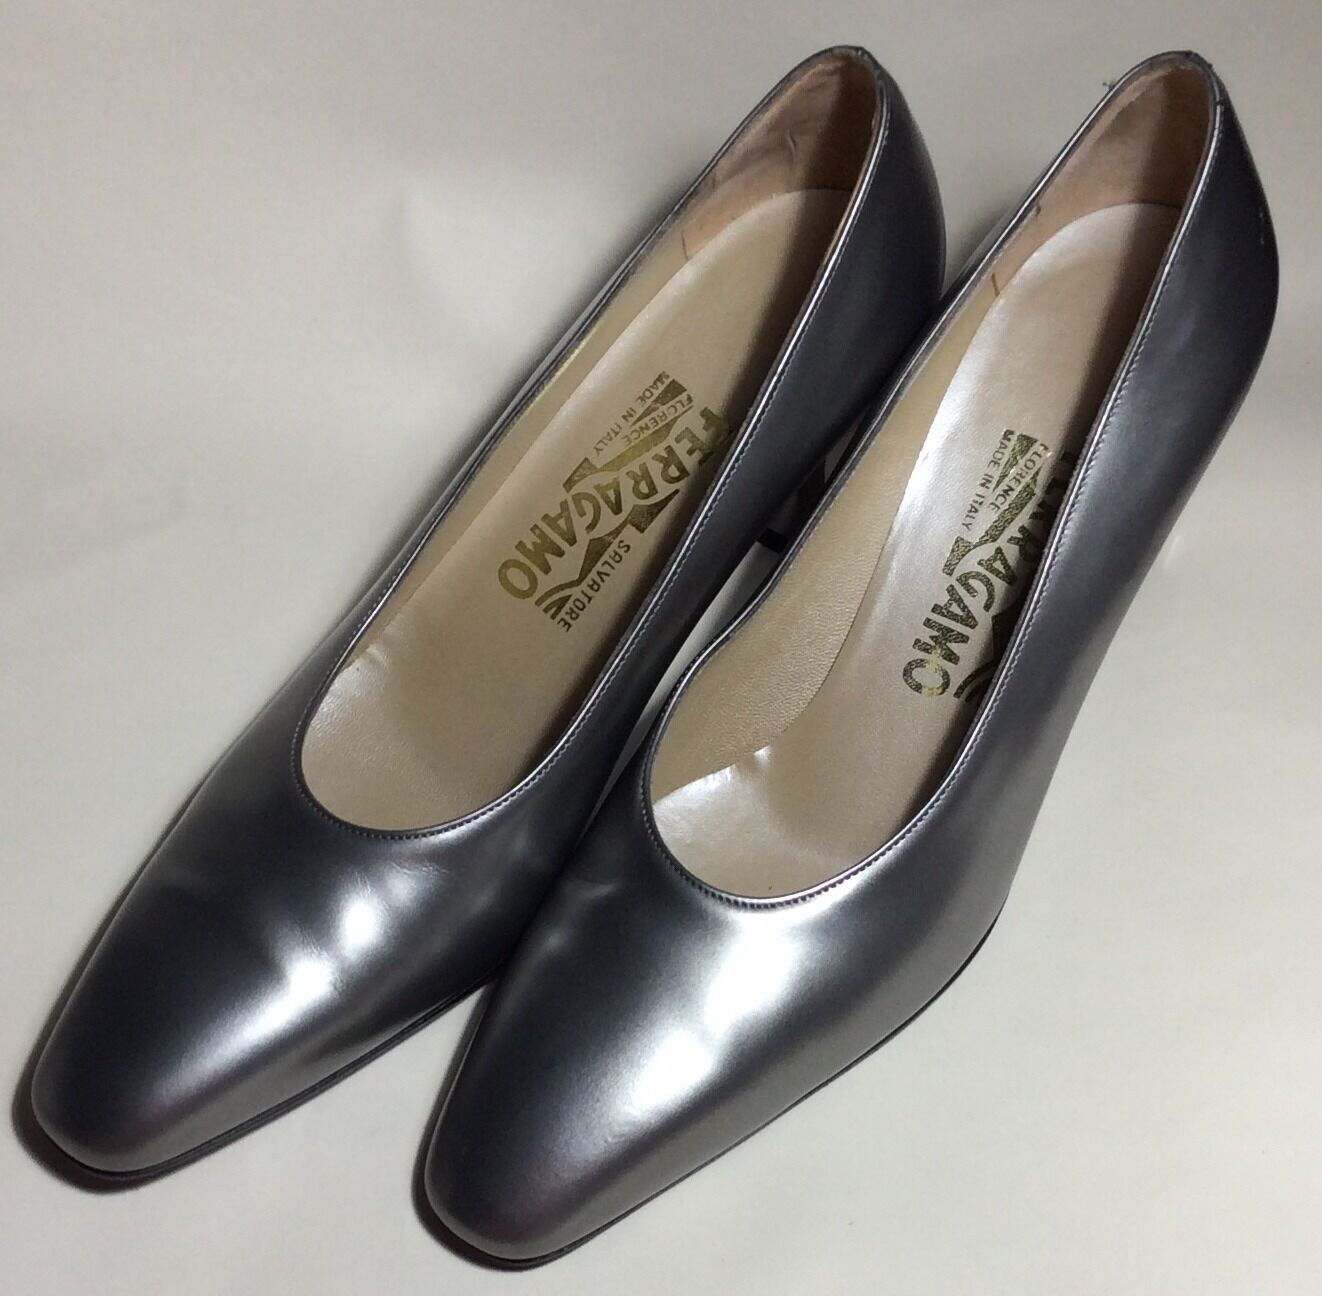 Salvatore Ferragamo  Silver Metallic  Shiny Pumps Heels